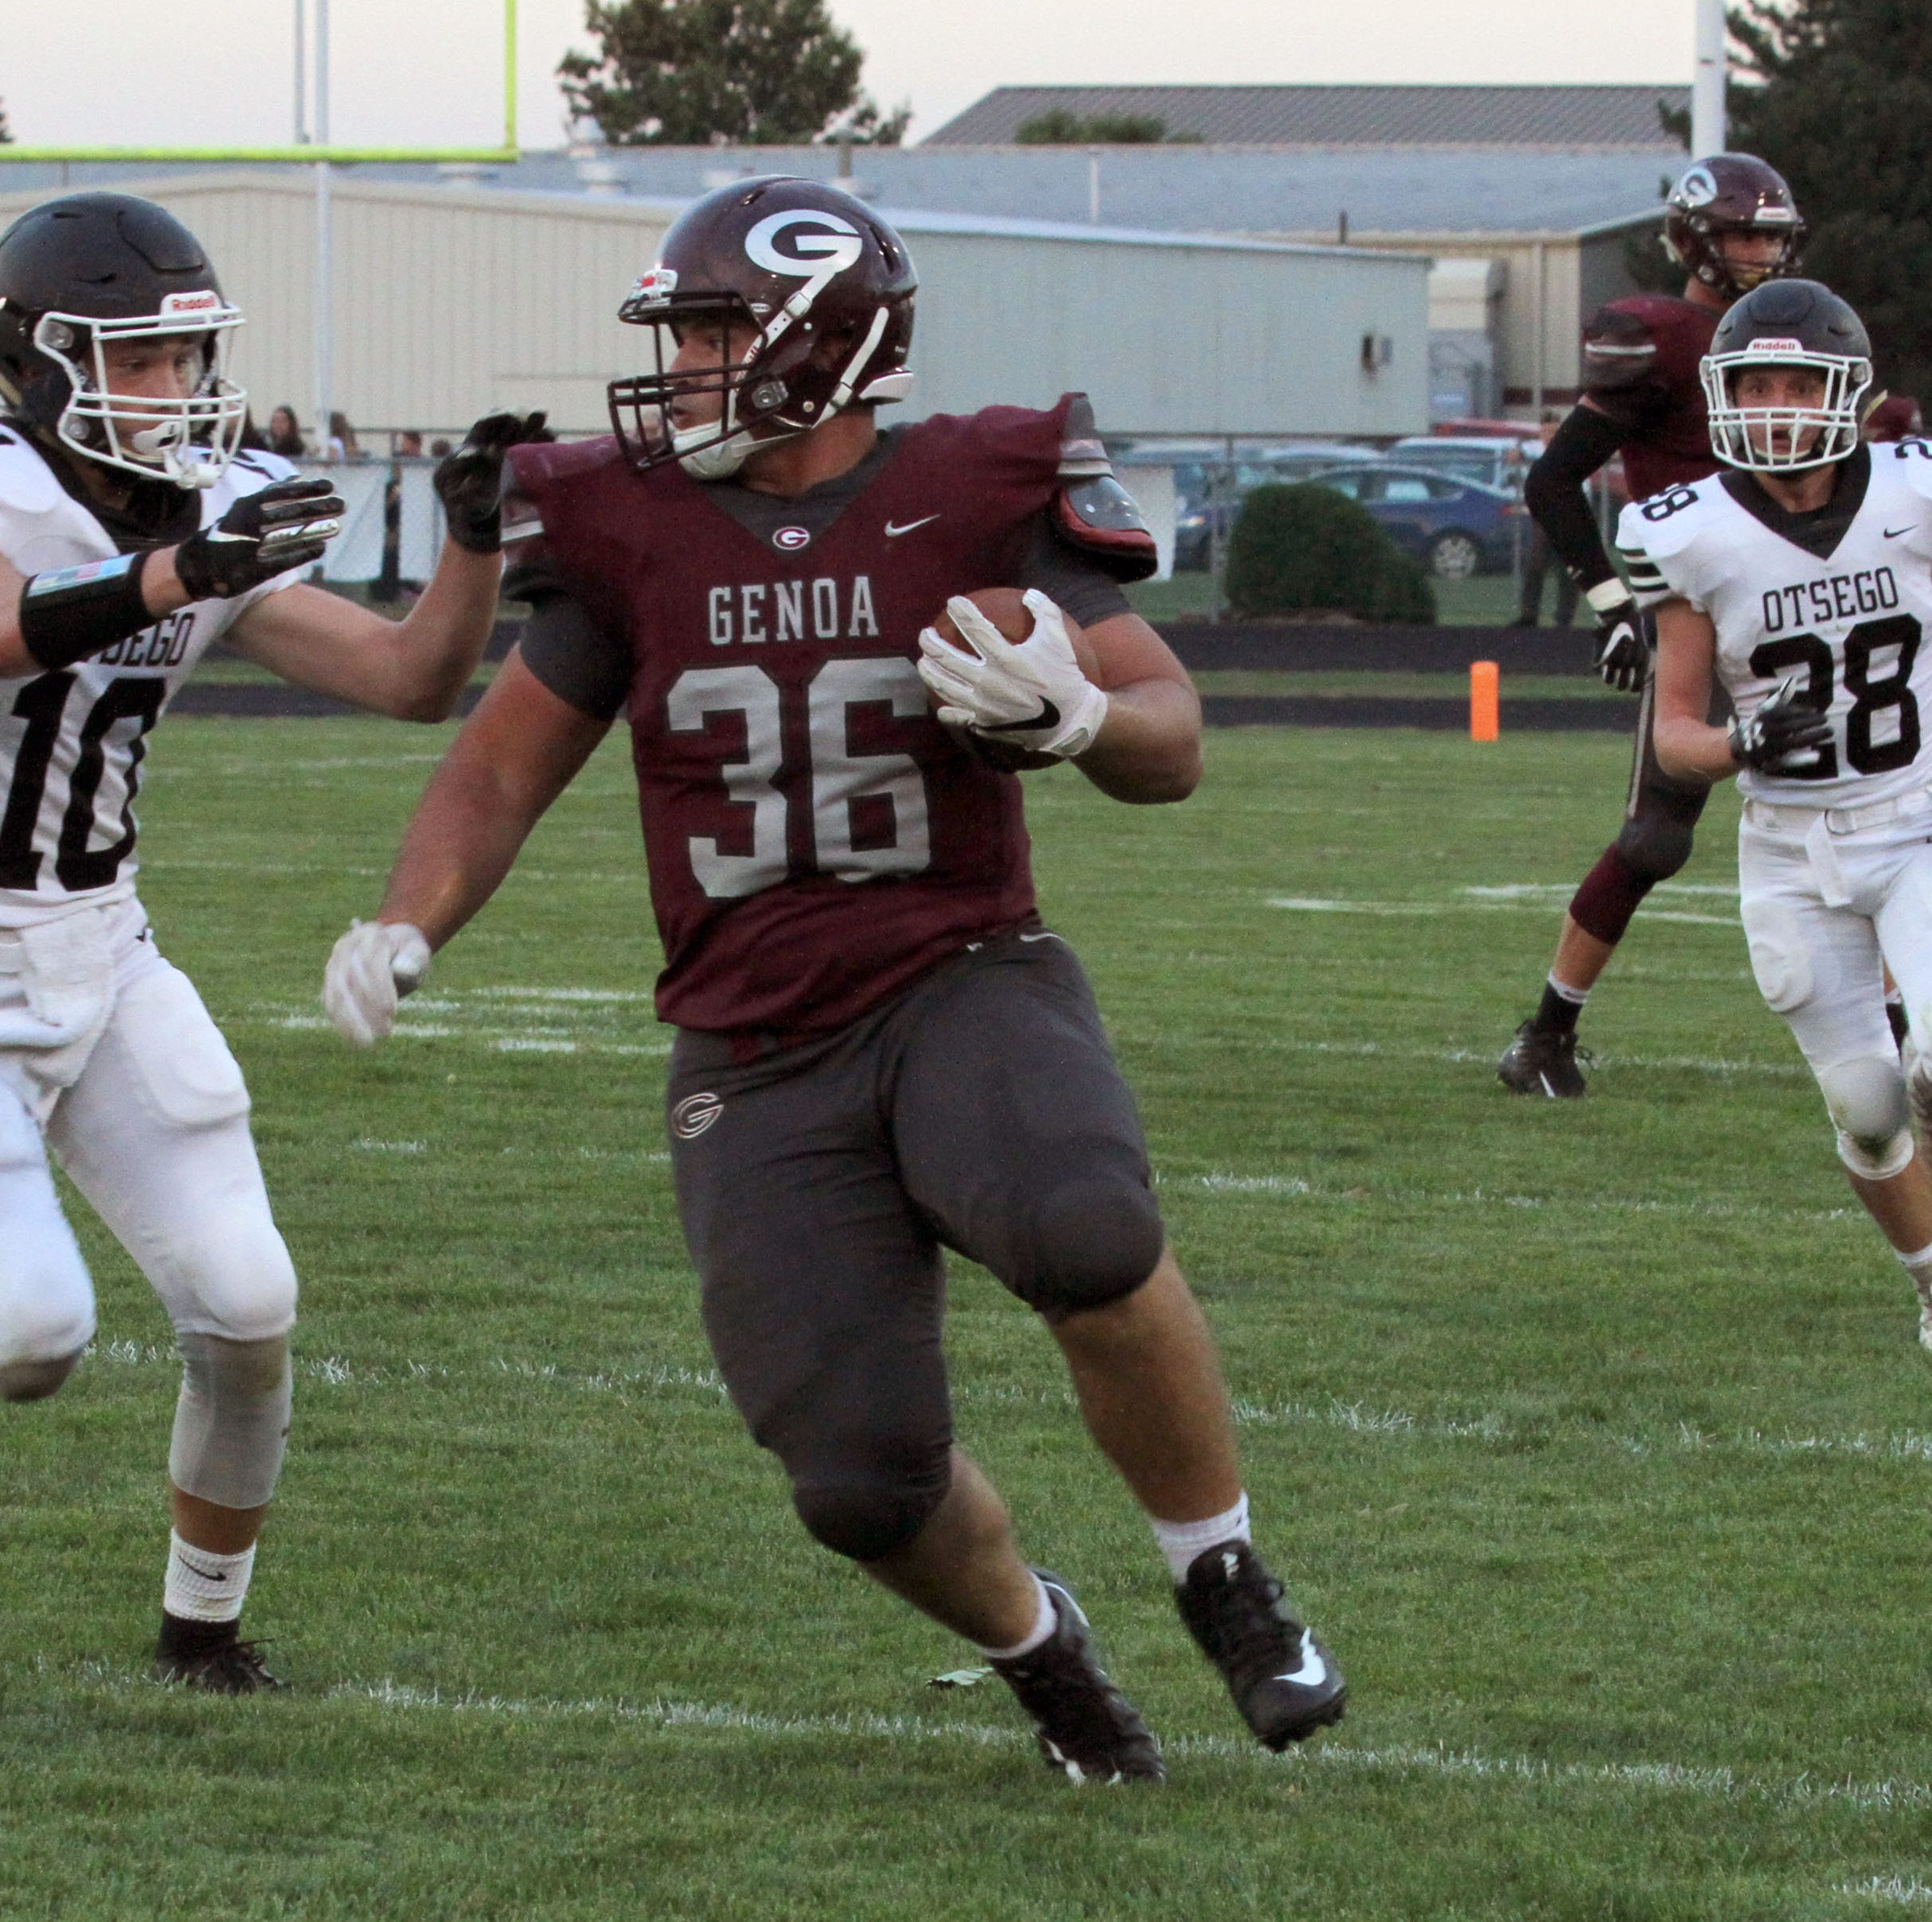 Genoa's Daniel Novotney carries the football against Otsego.